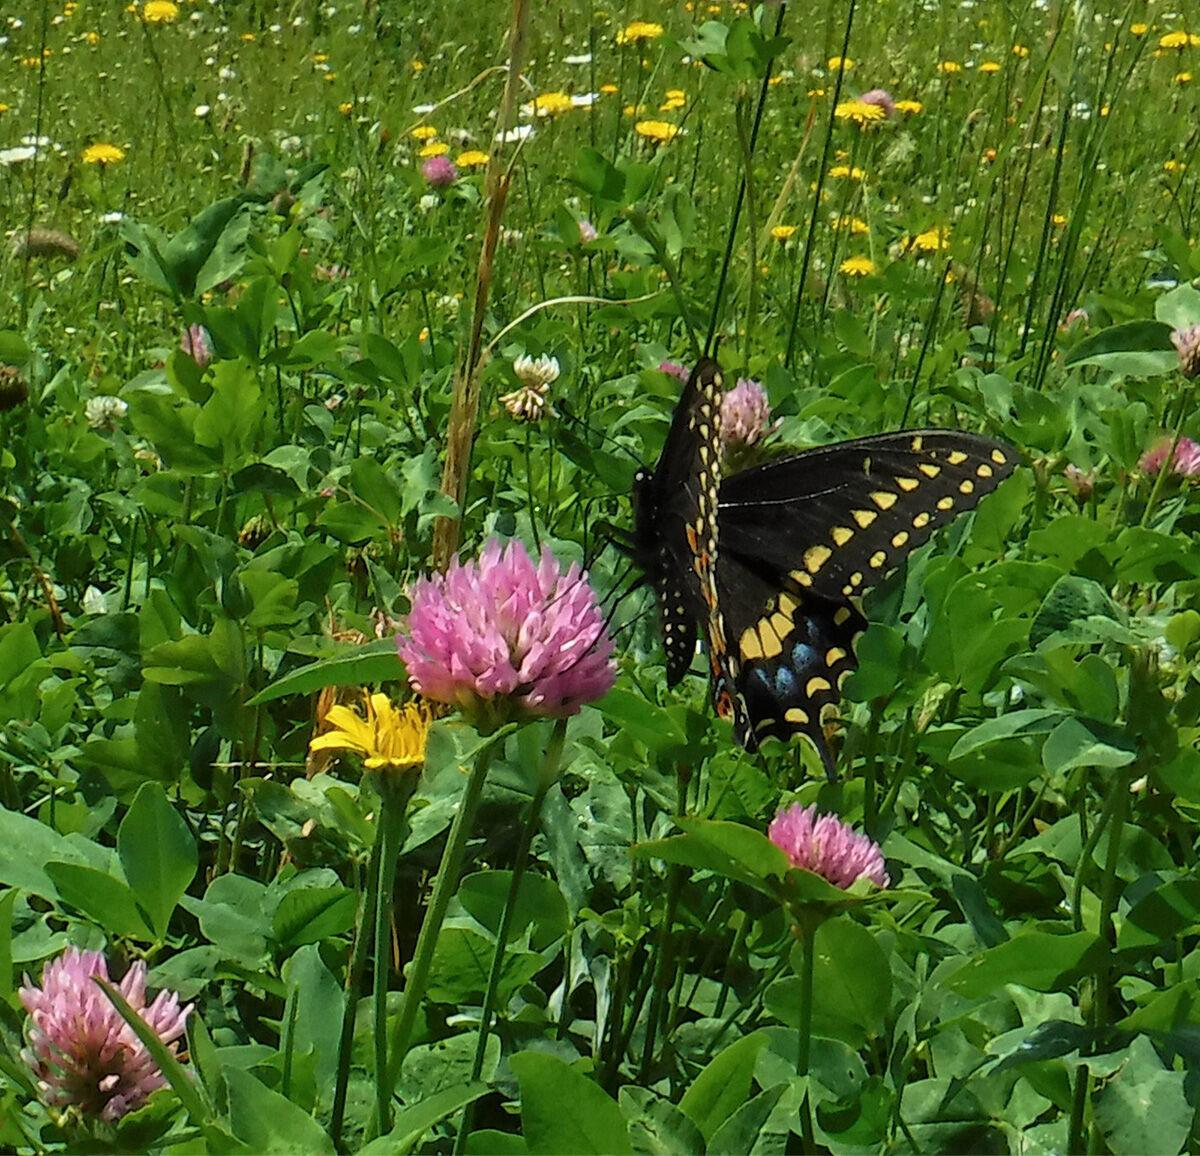 'It's really all connected': Nature experts recommend food plots that benefit bees, butterflies